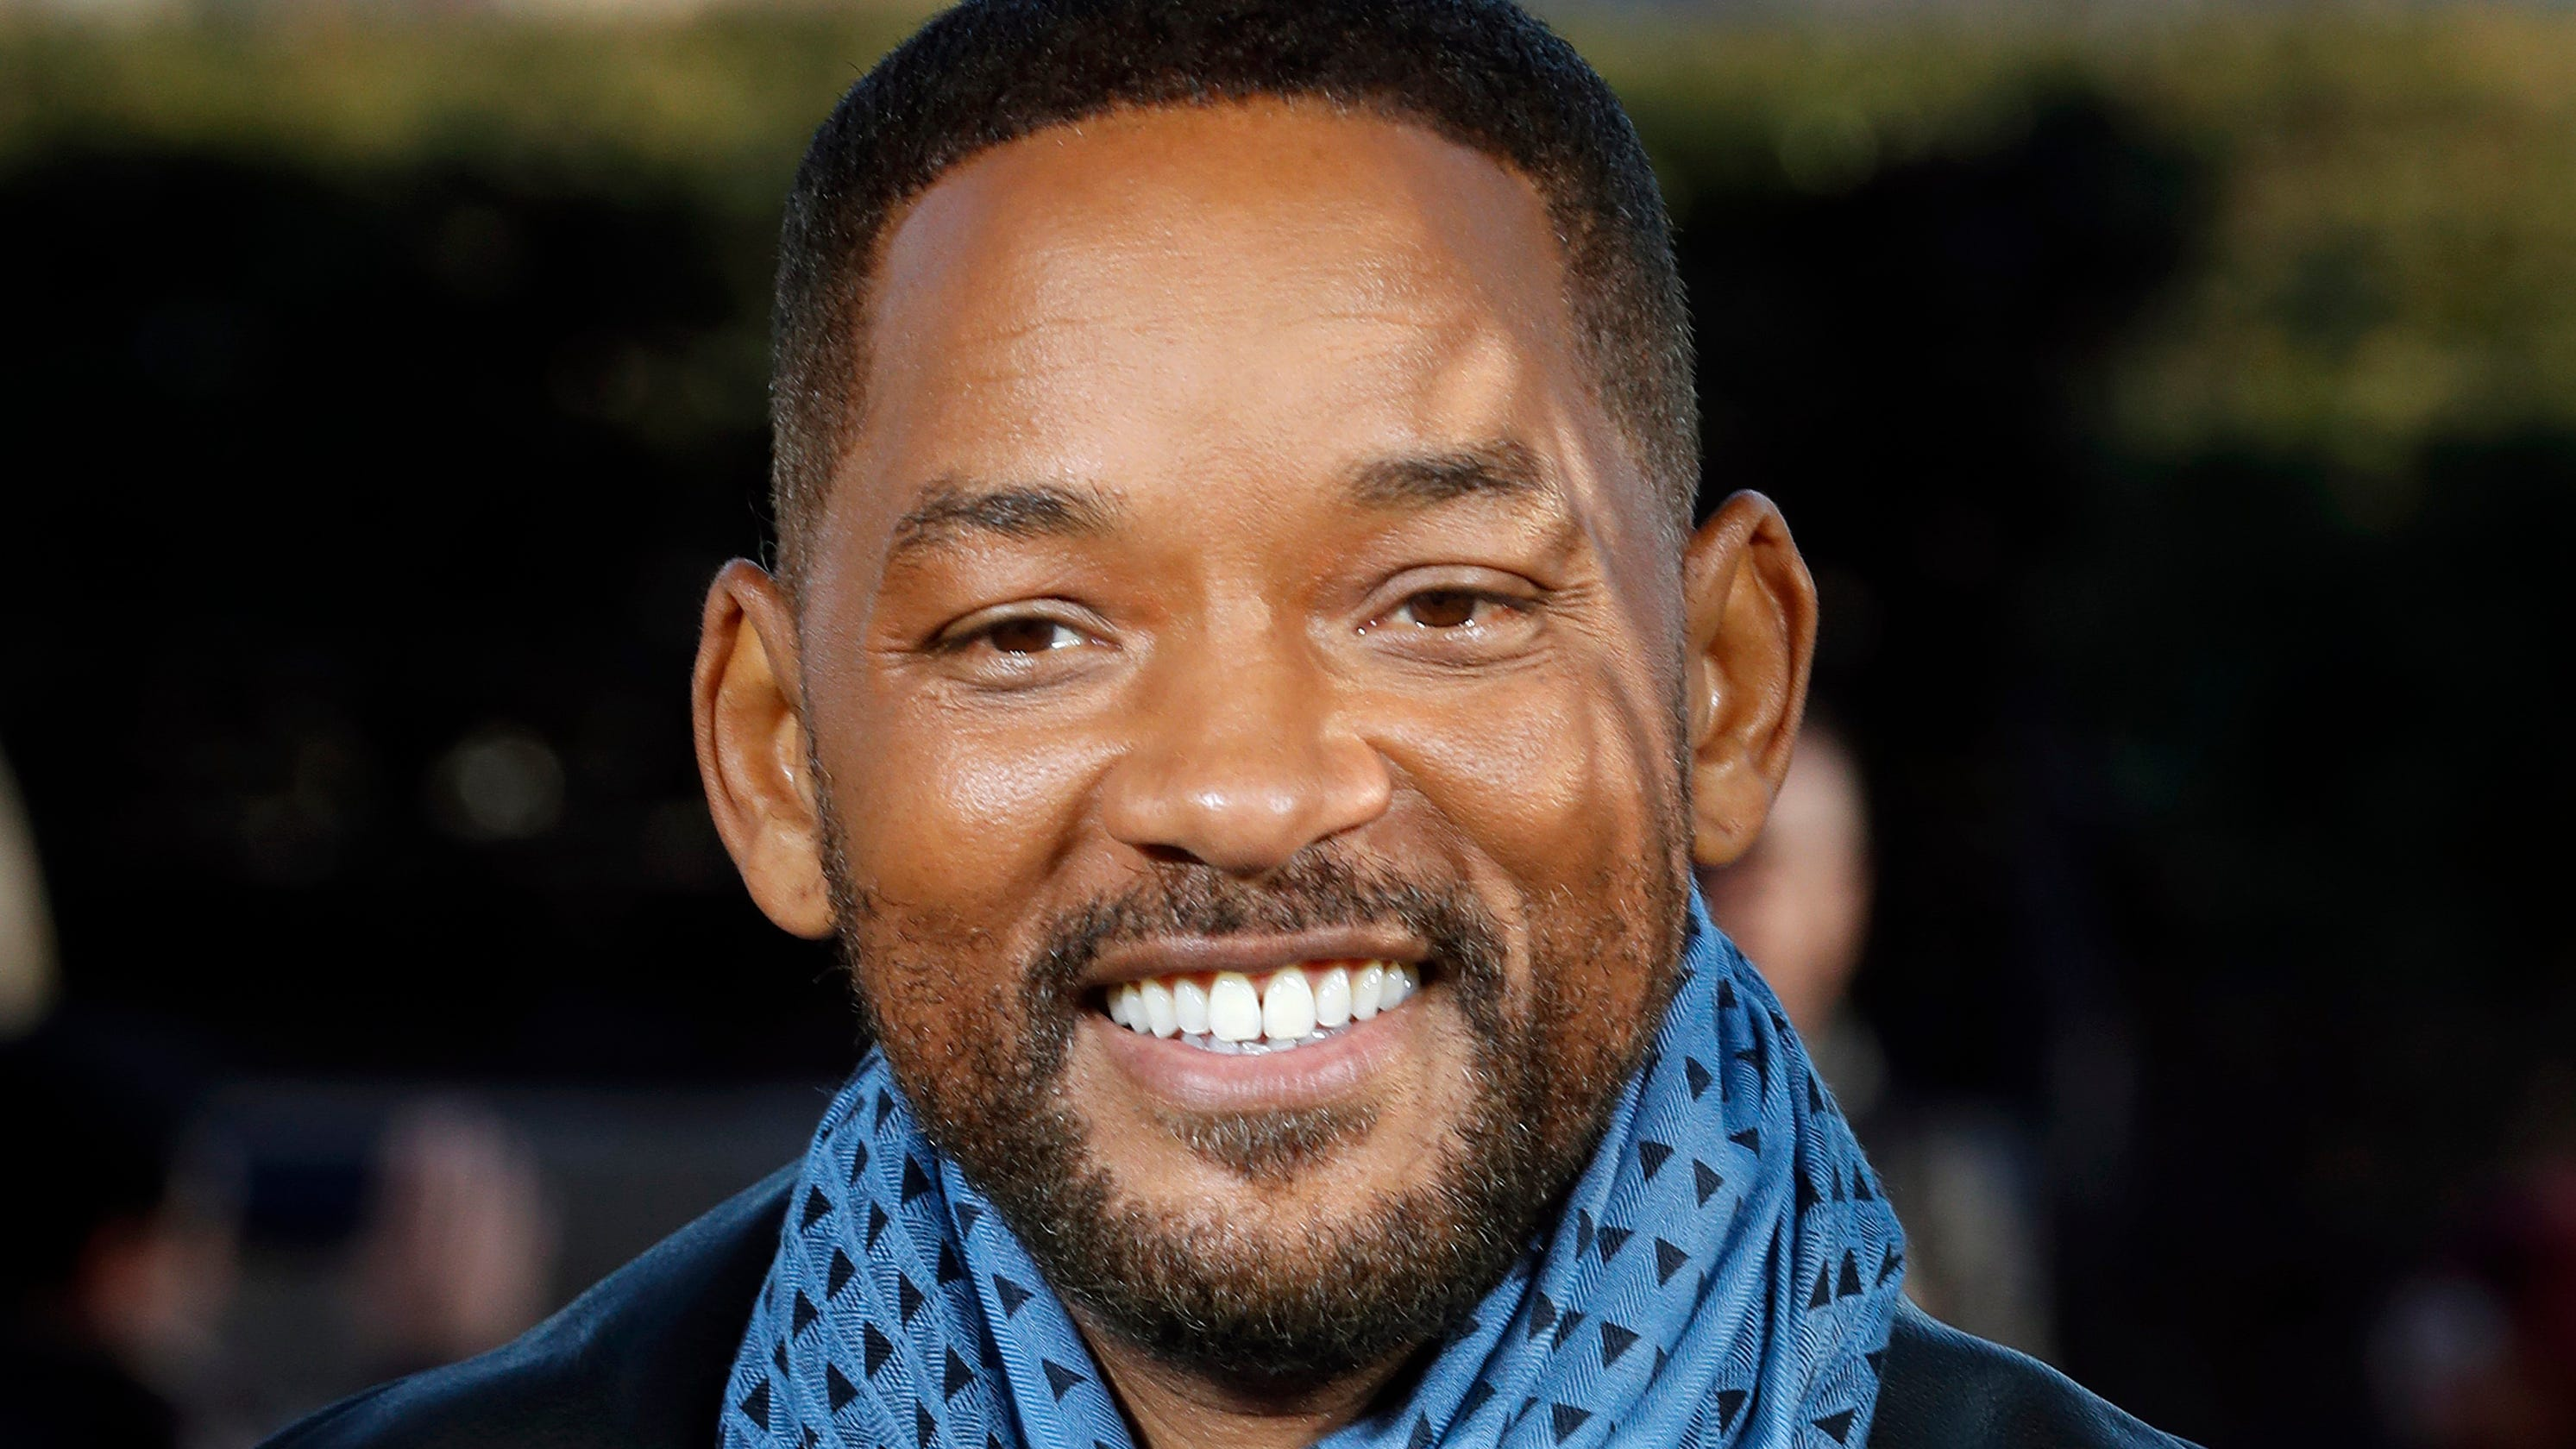 'It's been a labor of love': Will Smith announces release of his forthcoming memoir 'Will' - USA TODAY